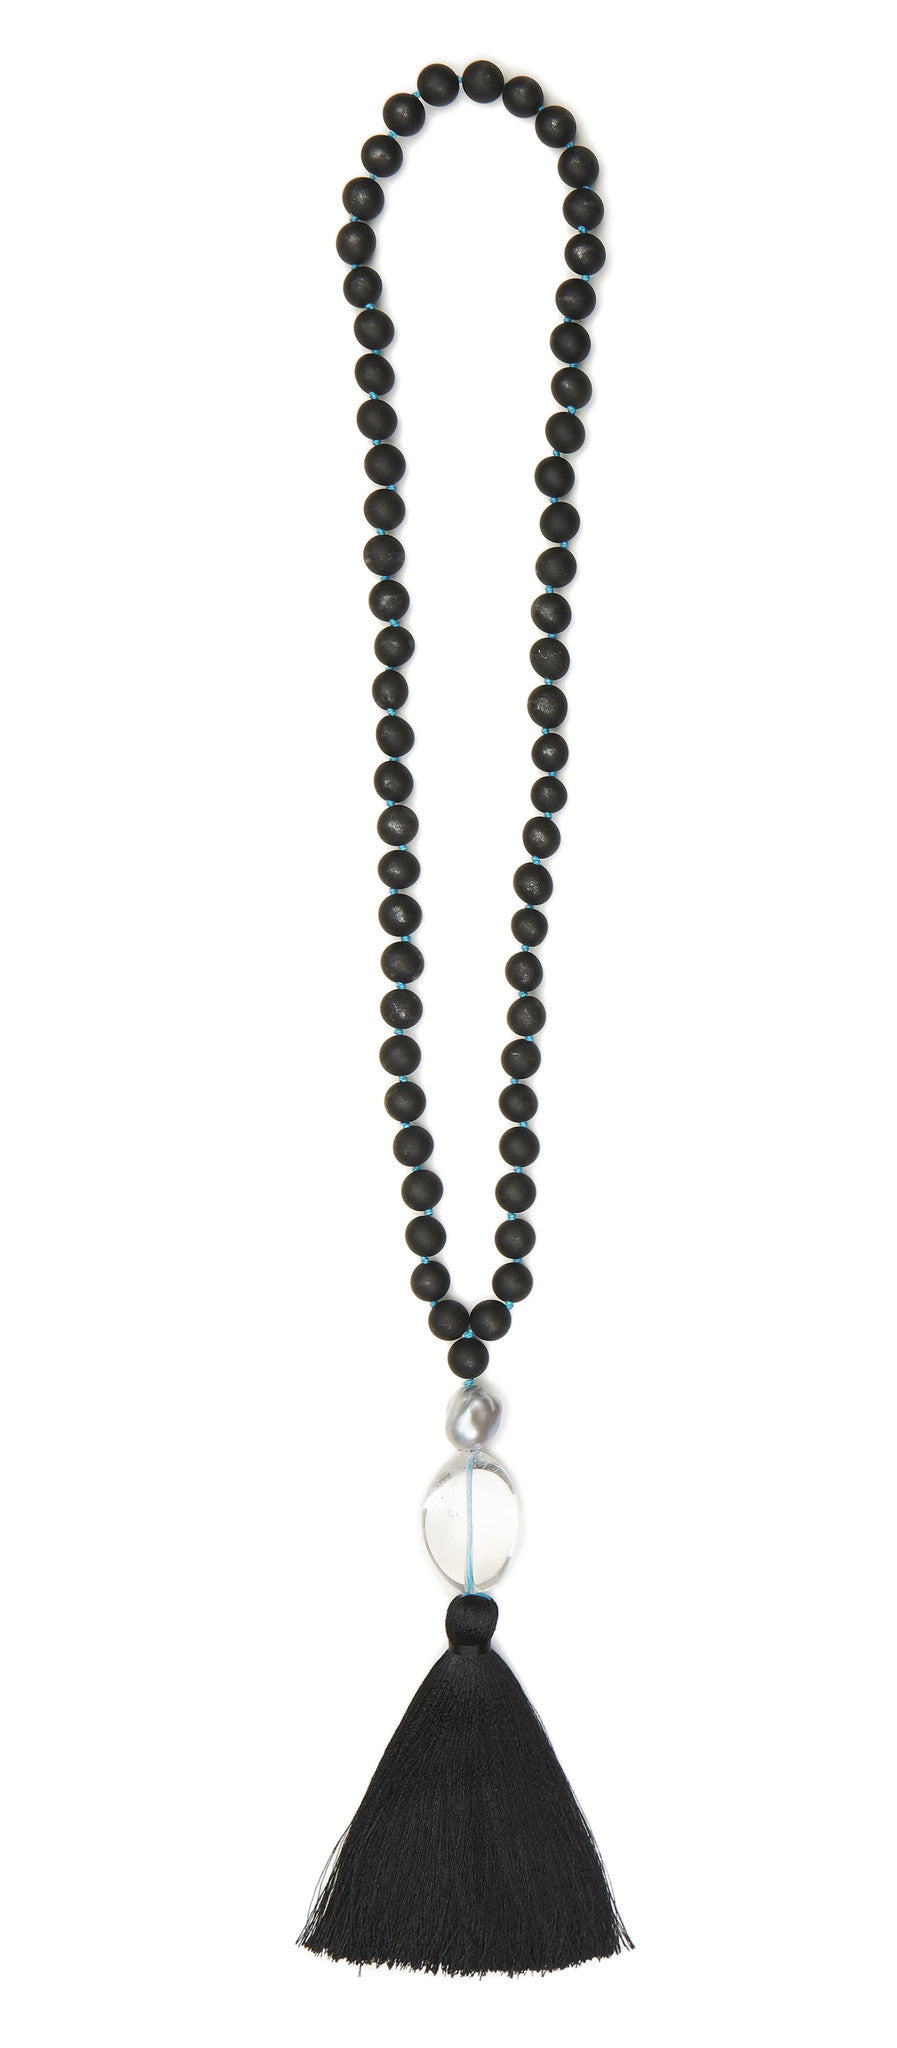 Untitled Black Onyx